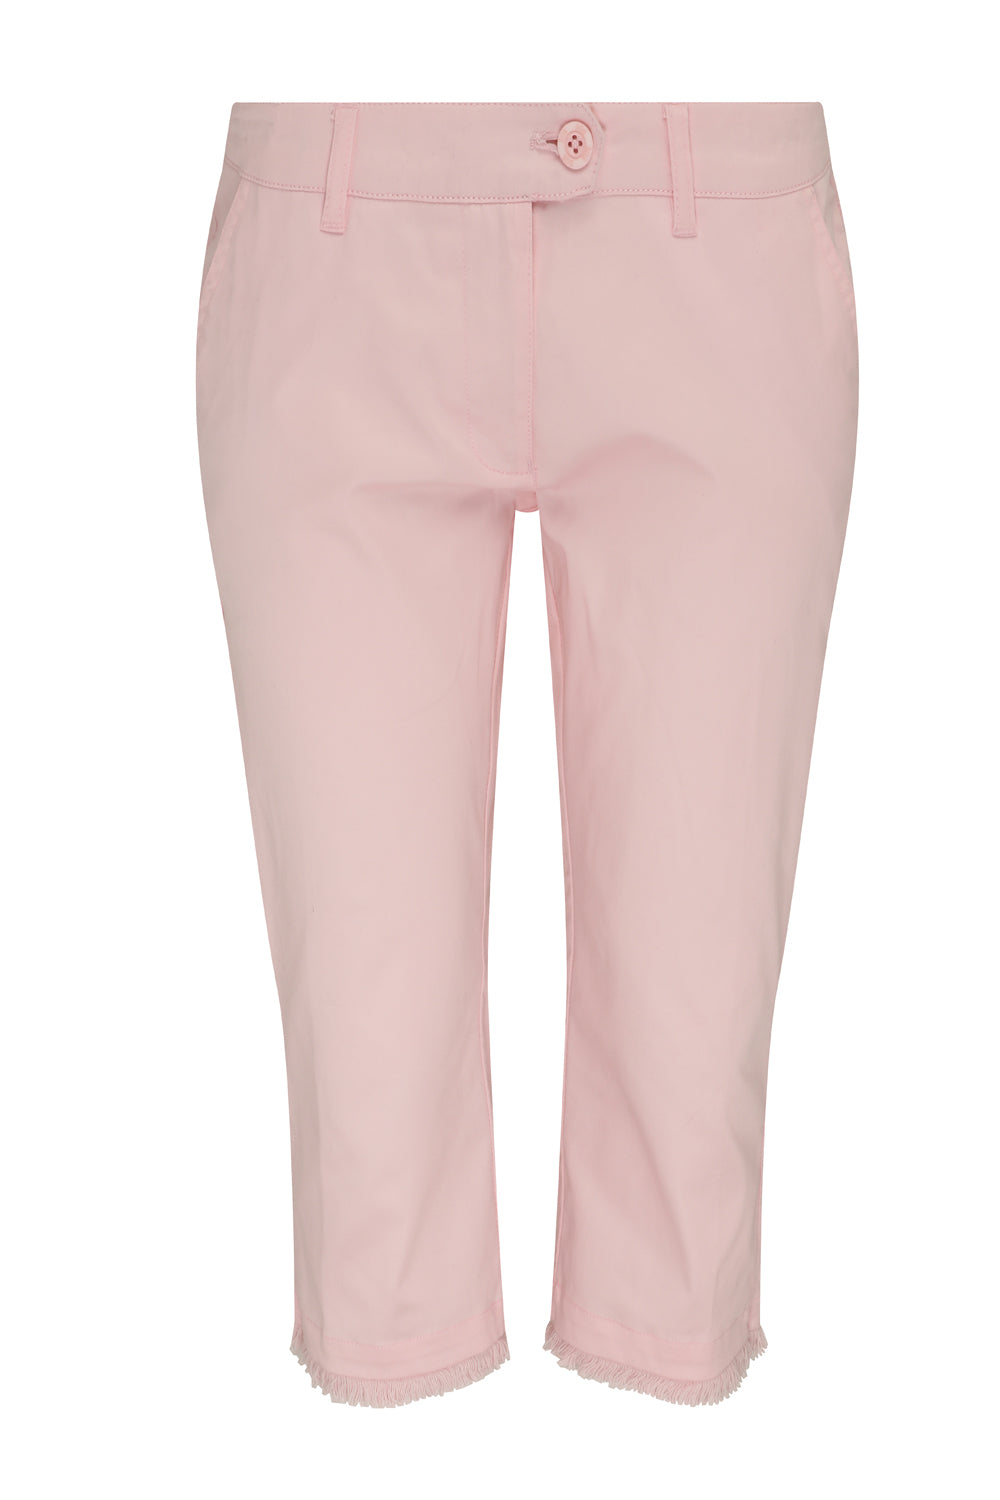 Crete Cotton Satin Capri